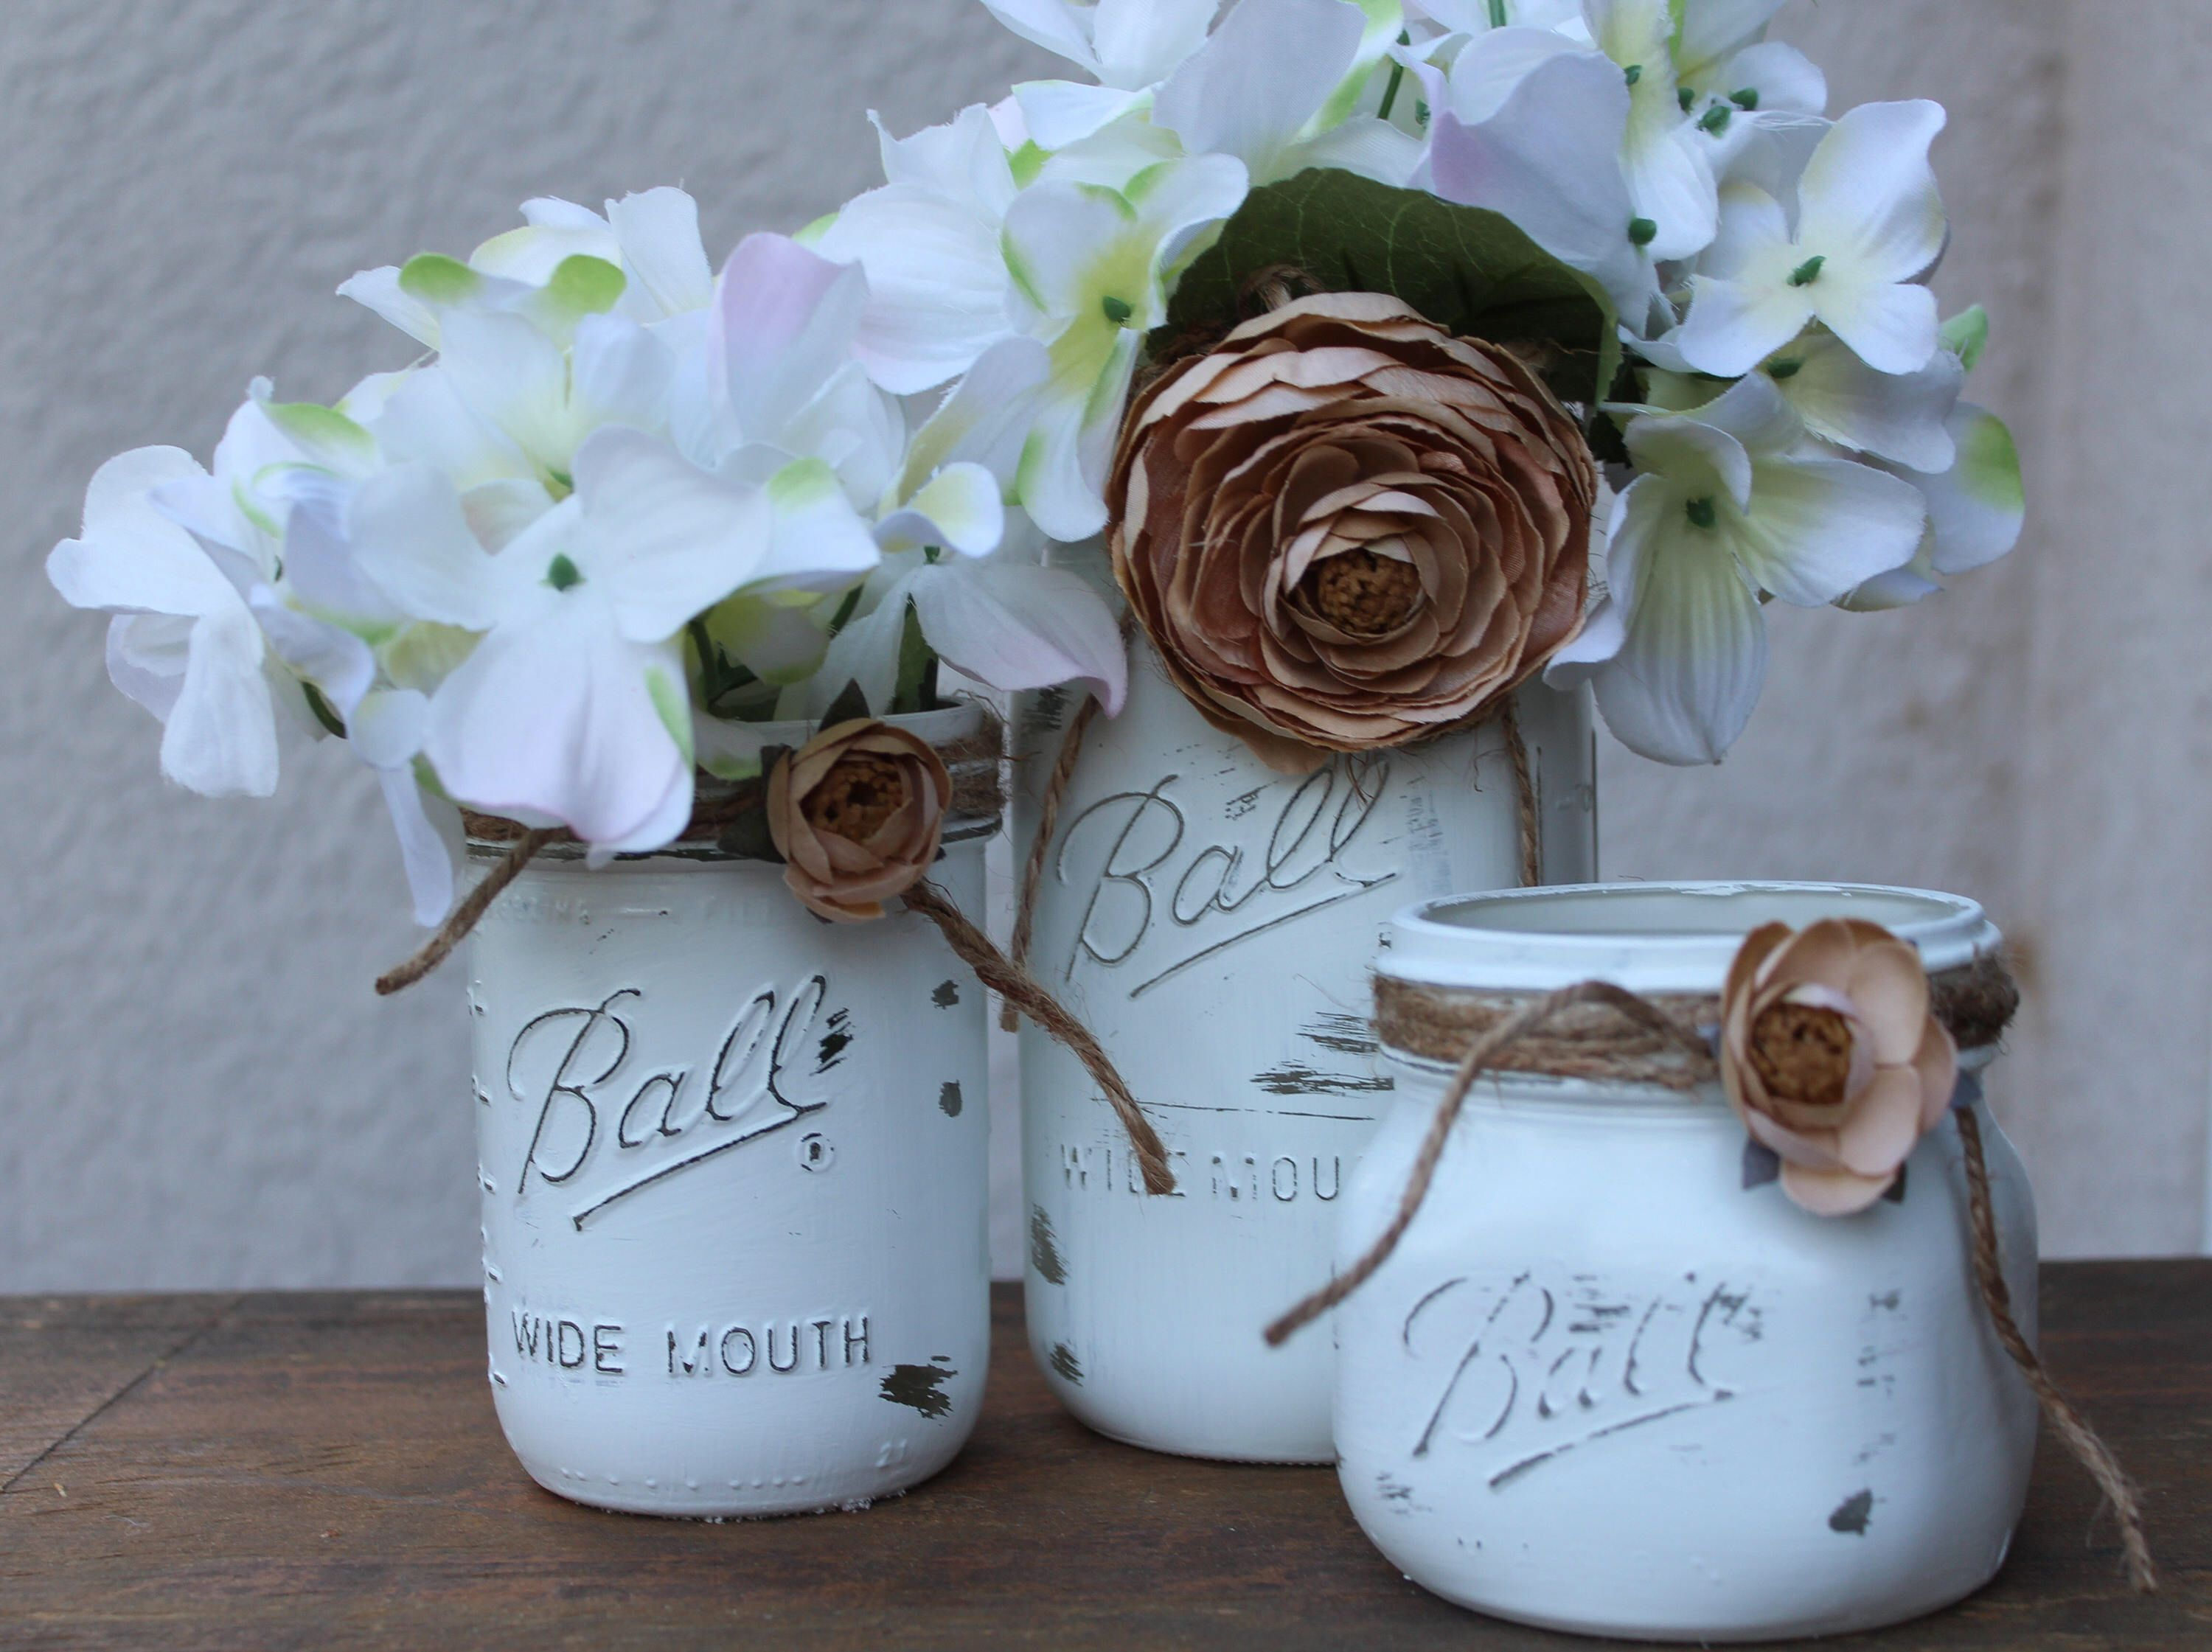 country style wedding shower ideas%0A Mason jar centerpieces  Painted Mason jars  Mason jar ideas  Bridal shower  centerpieces